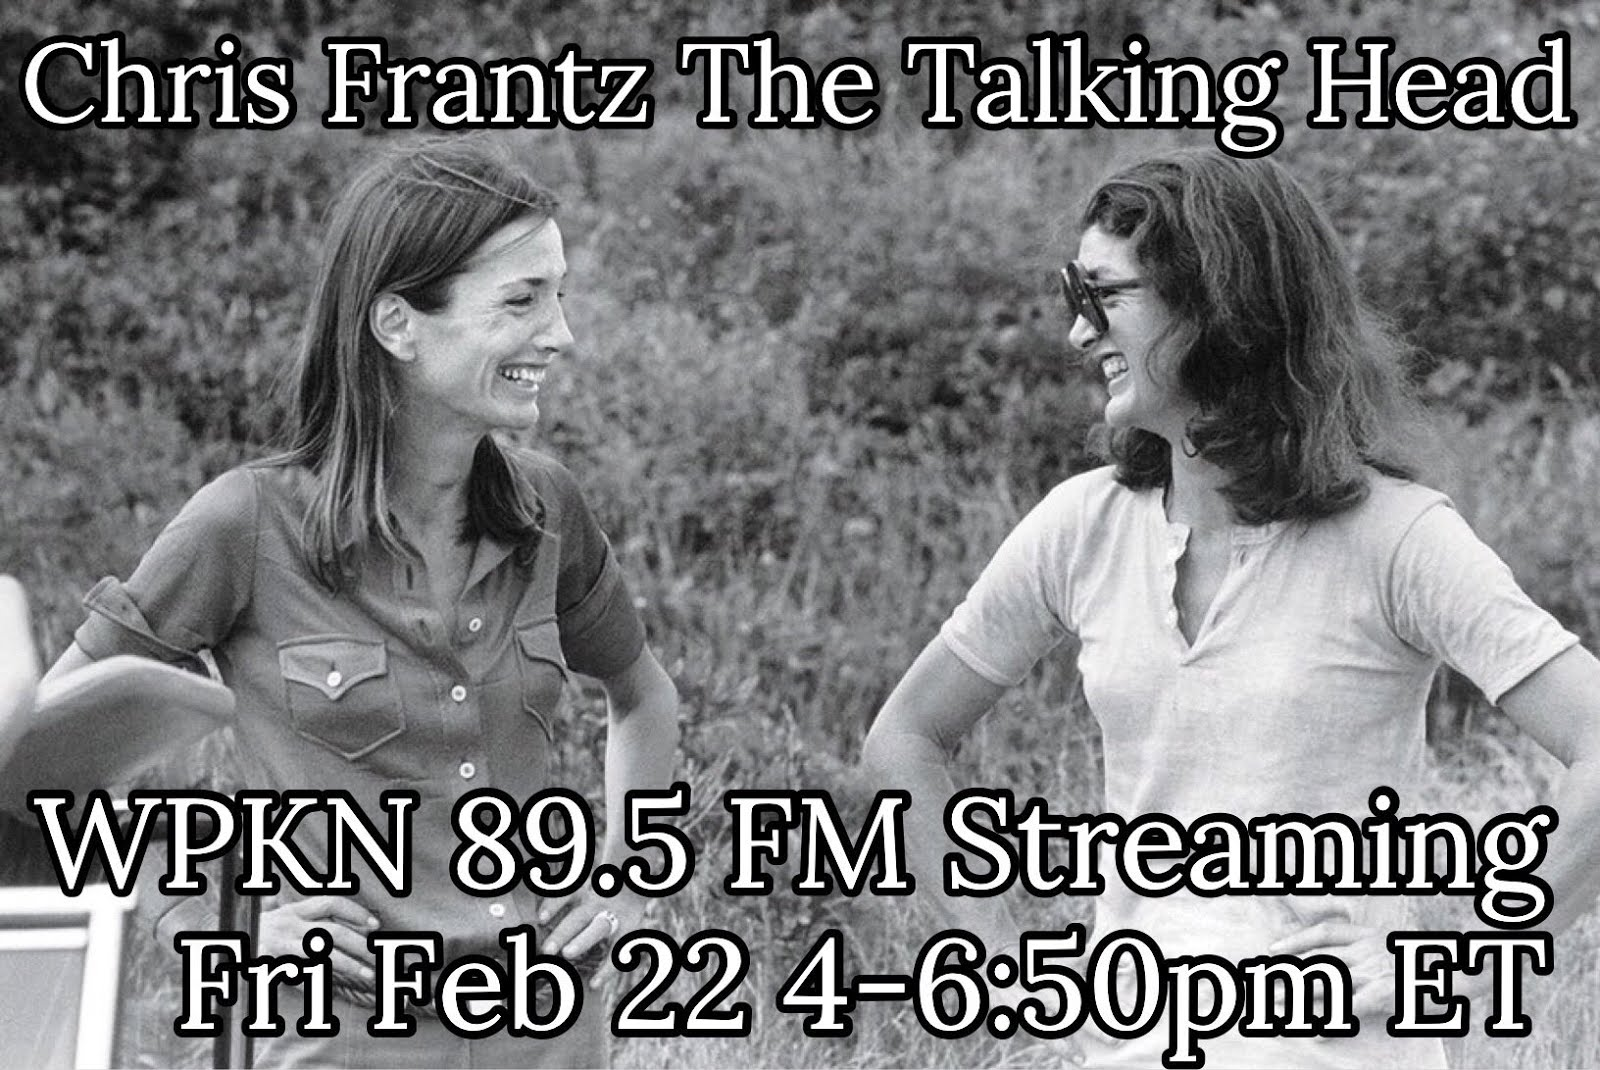 Chris Frantz The Talking Head Radio Show Feb 22, 2019 | LISTEN ON DEMAND